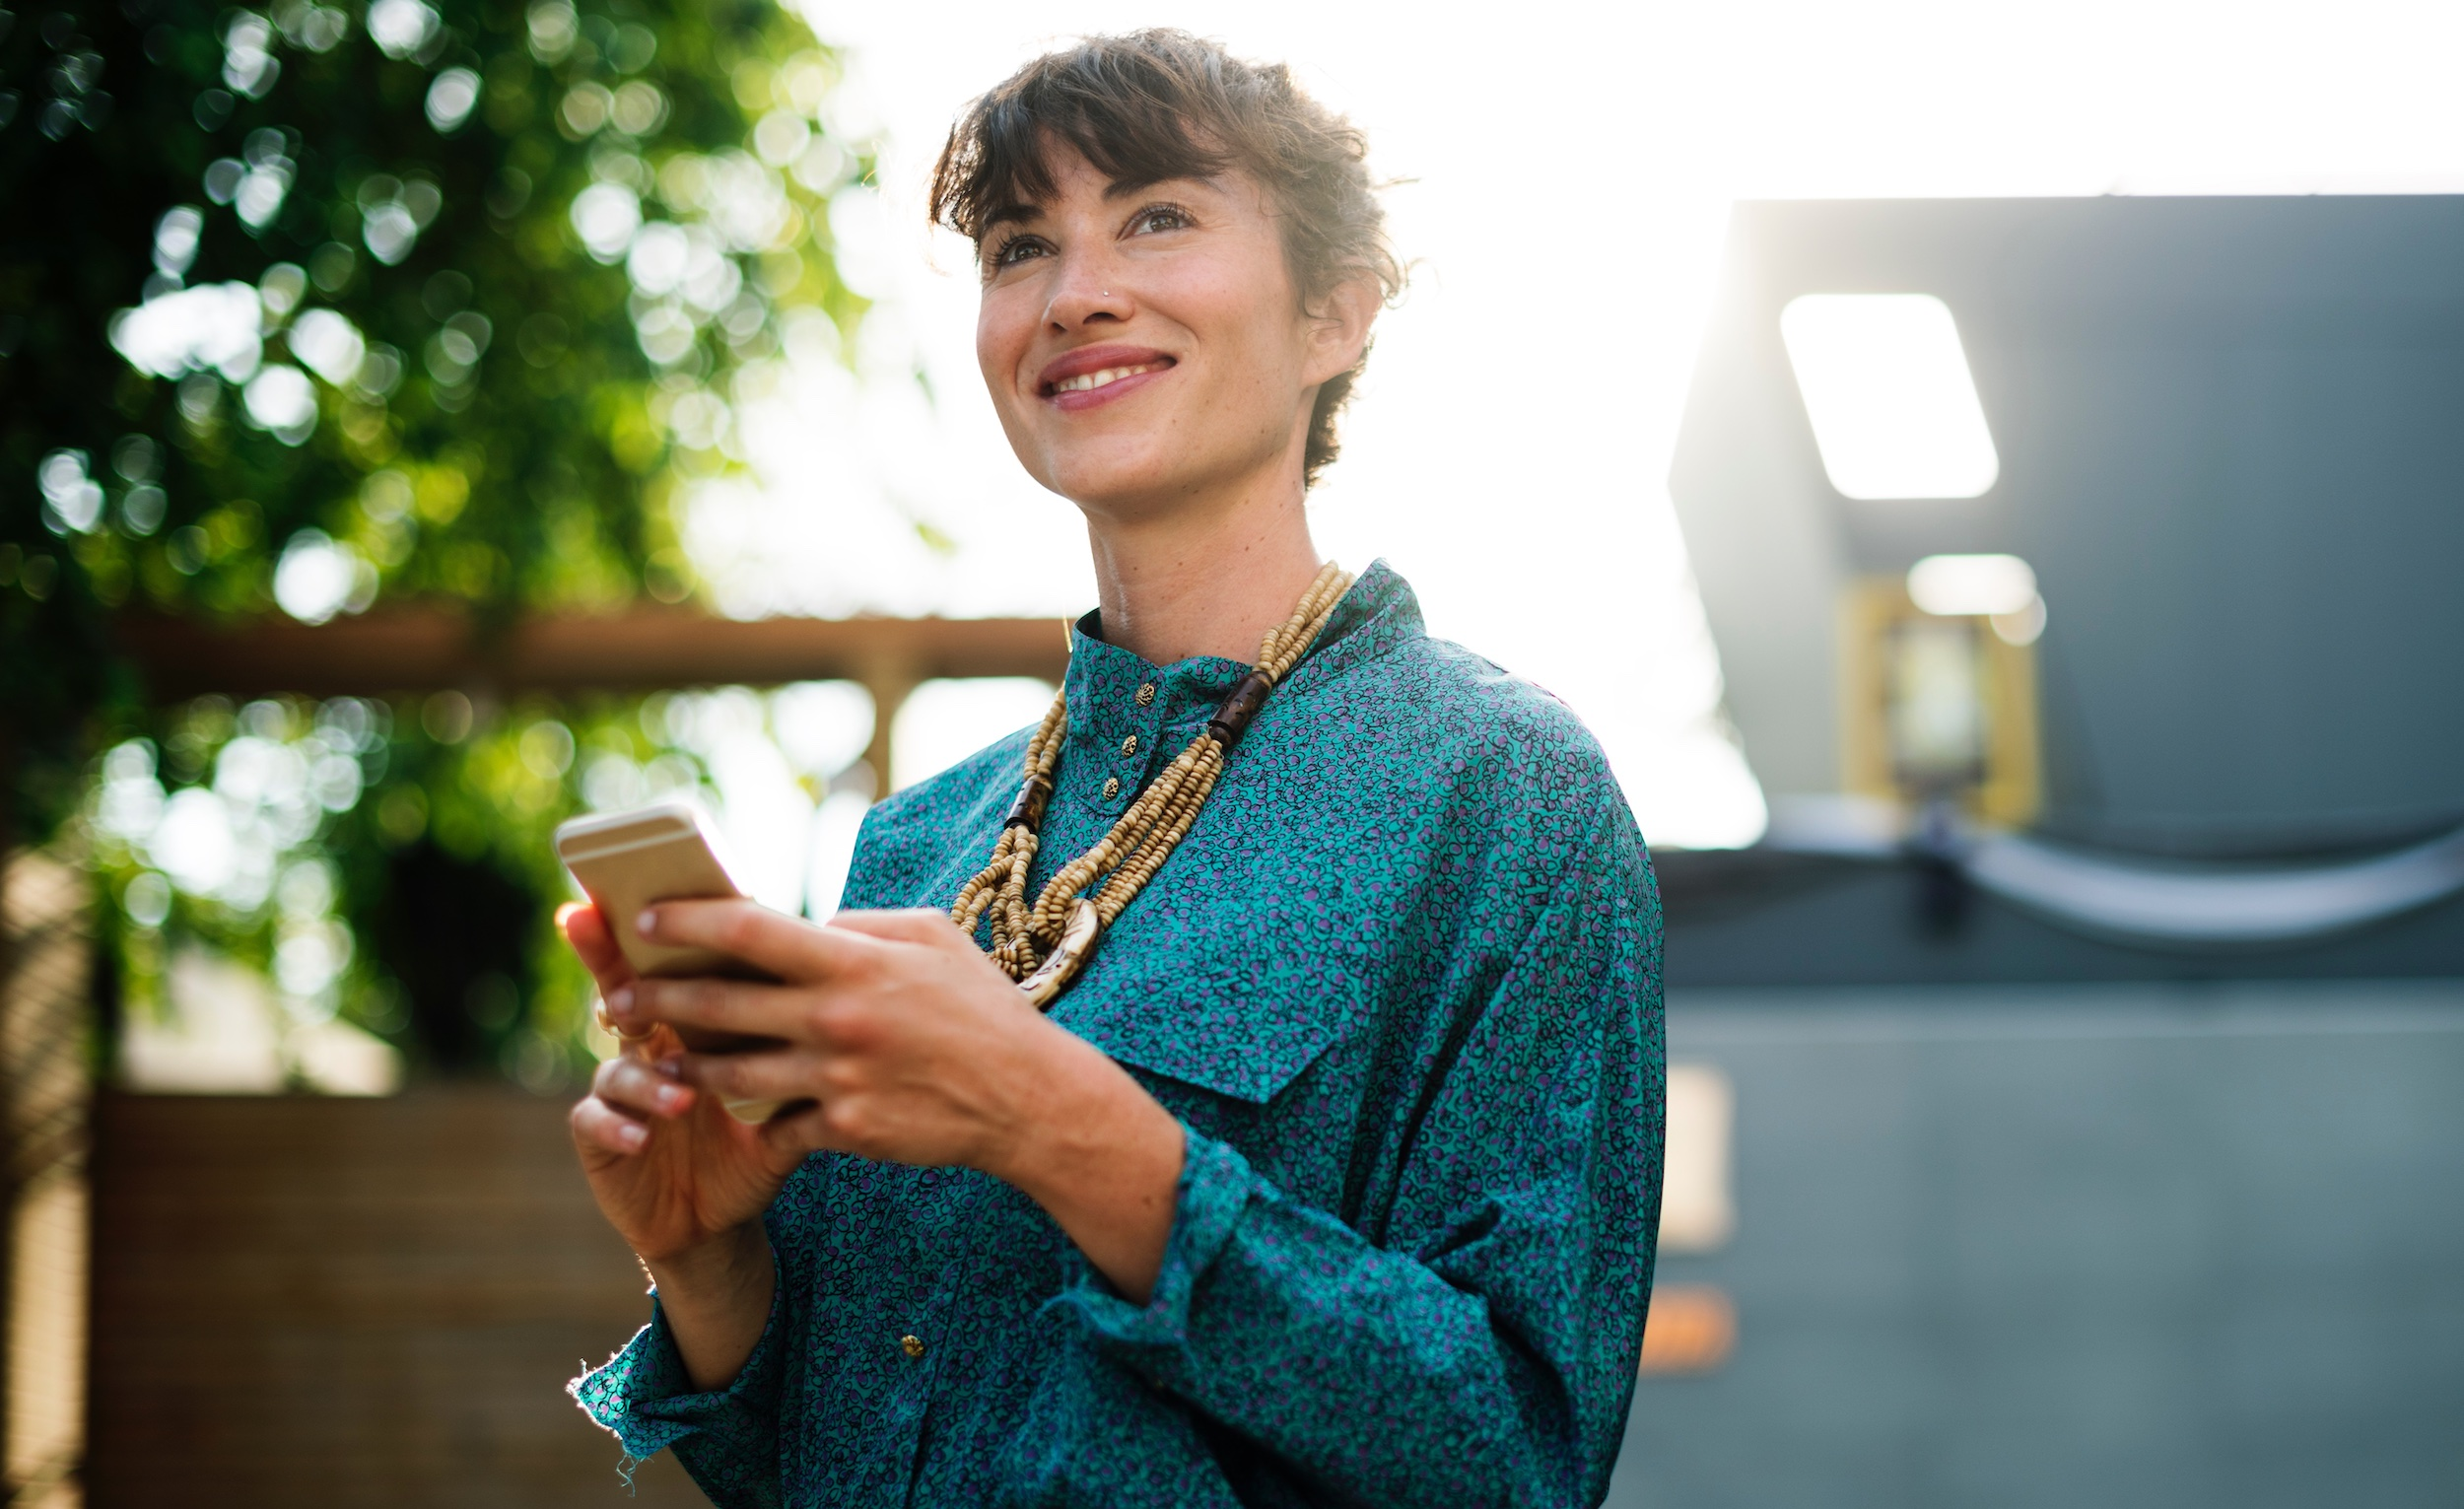 Smiling woman using her mobile